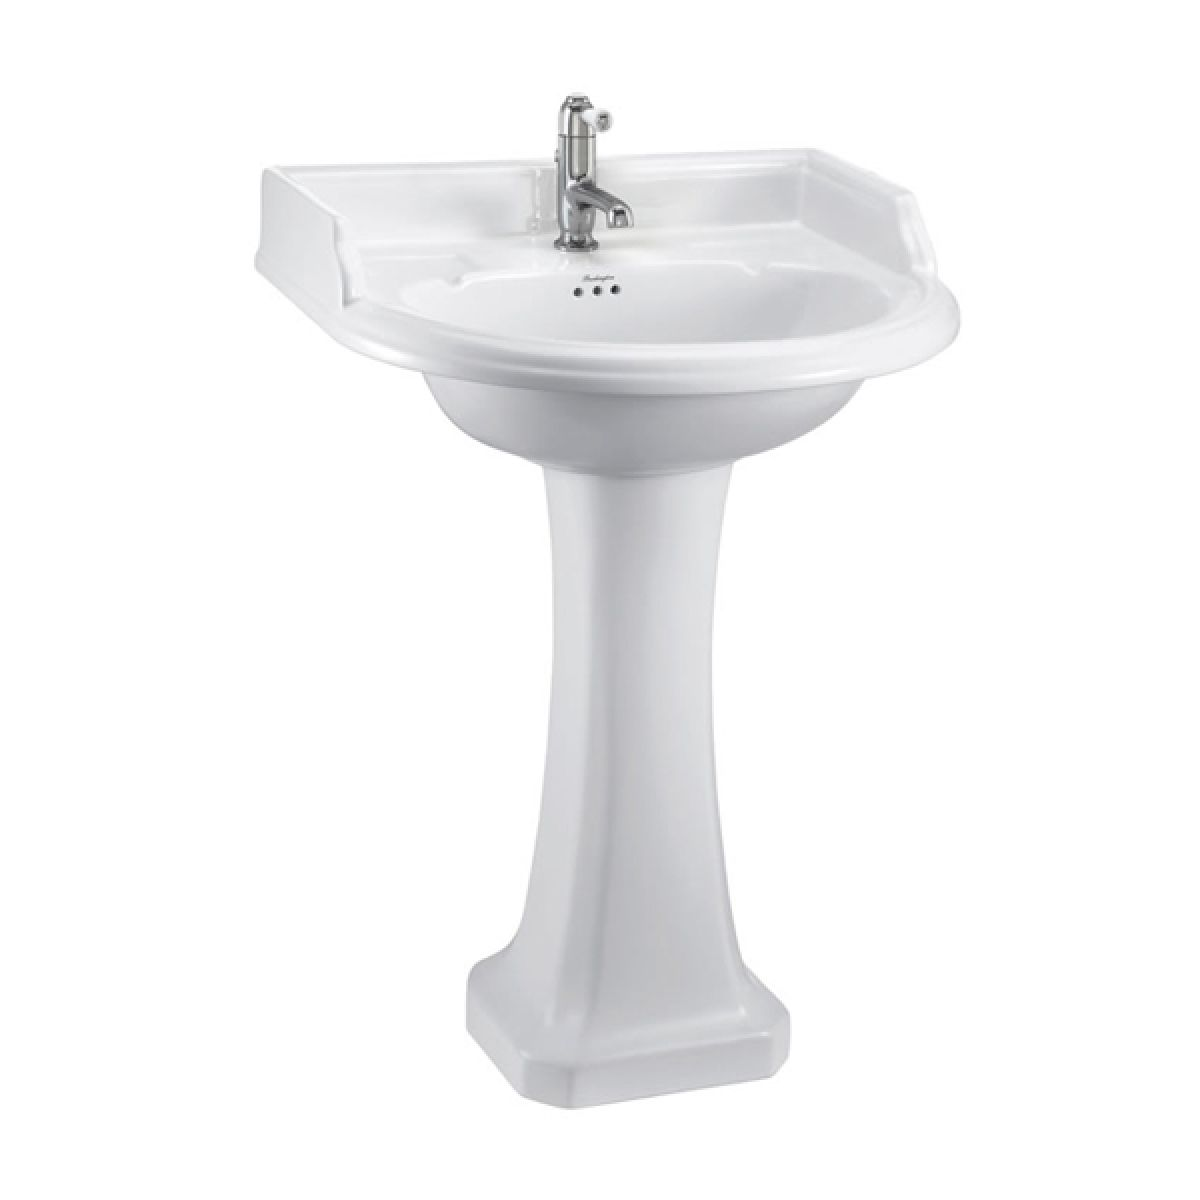 Burlington Classic Round Basin with Full Pedestal 650mm